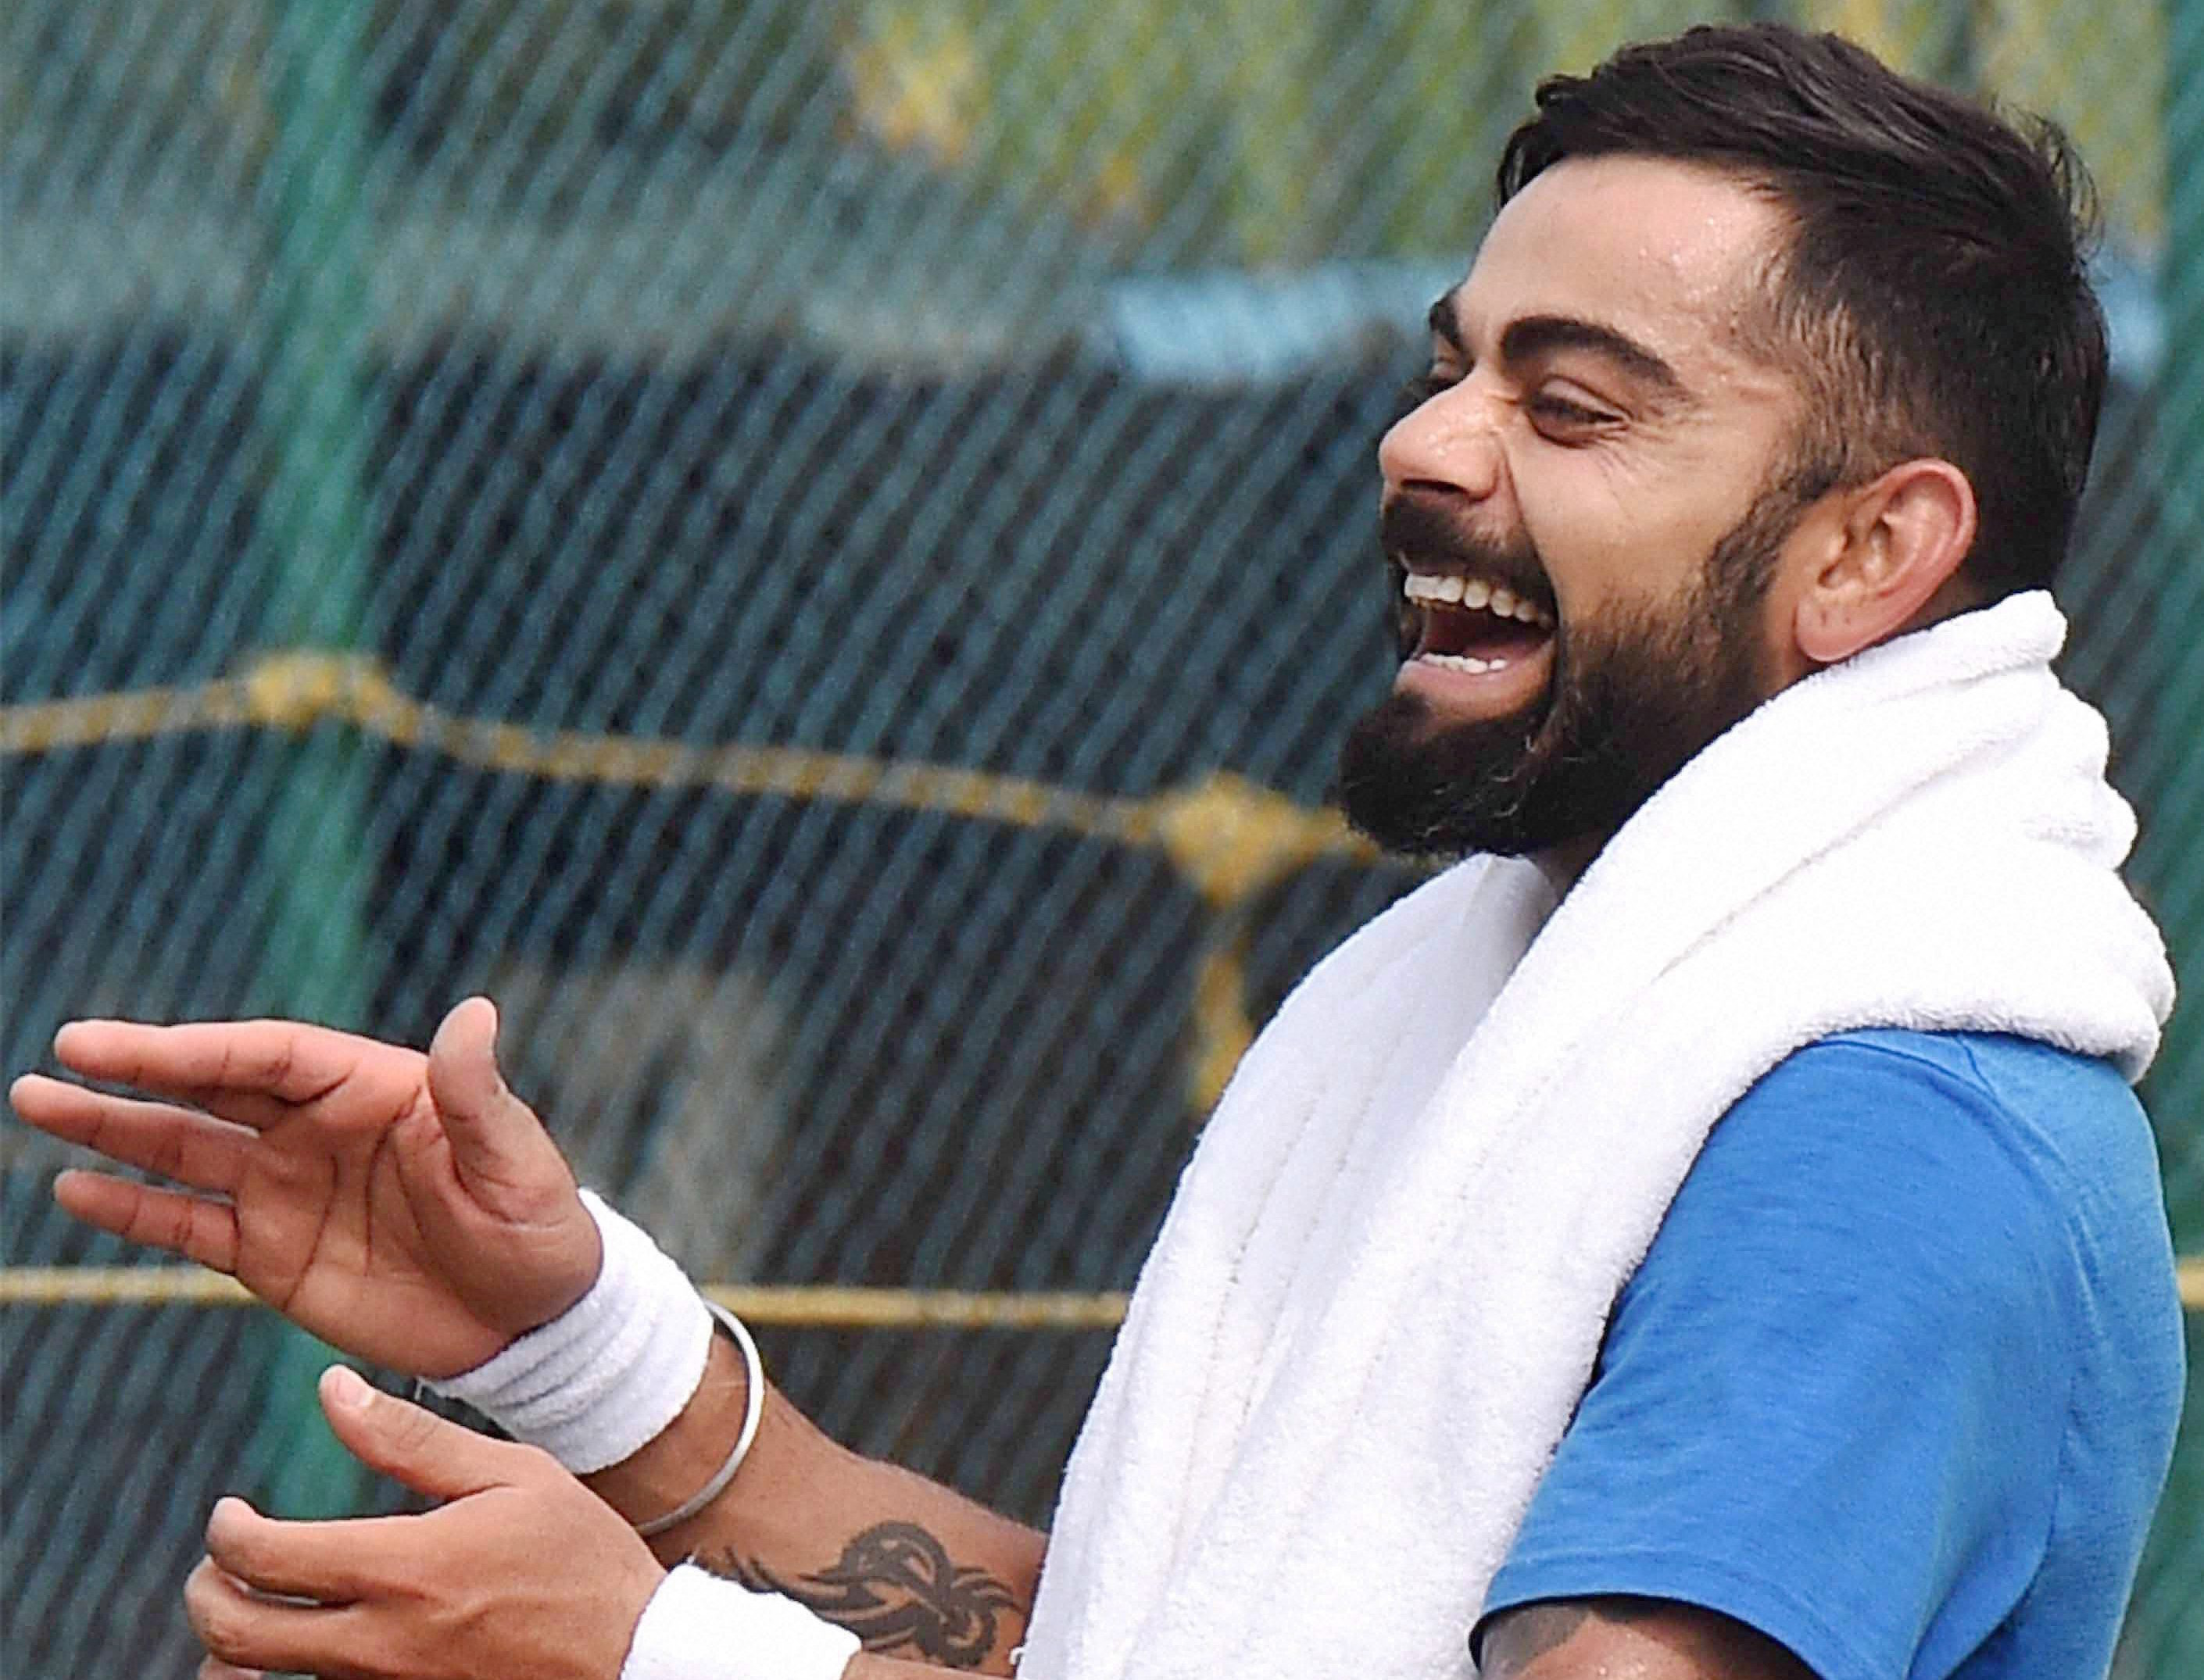 Men's Test cricket captain Virat Kohli during a practice session ahead of the second match against England in Visakhapatnam on November 16. Credit: PTI